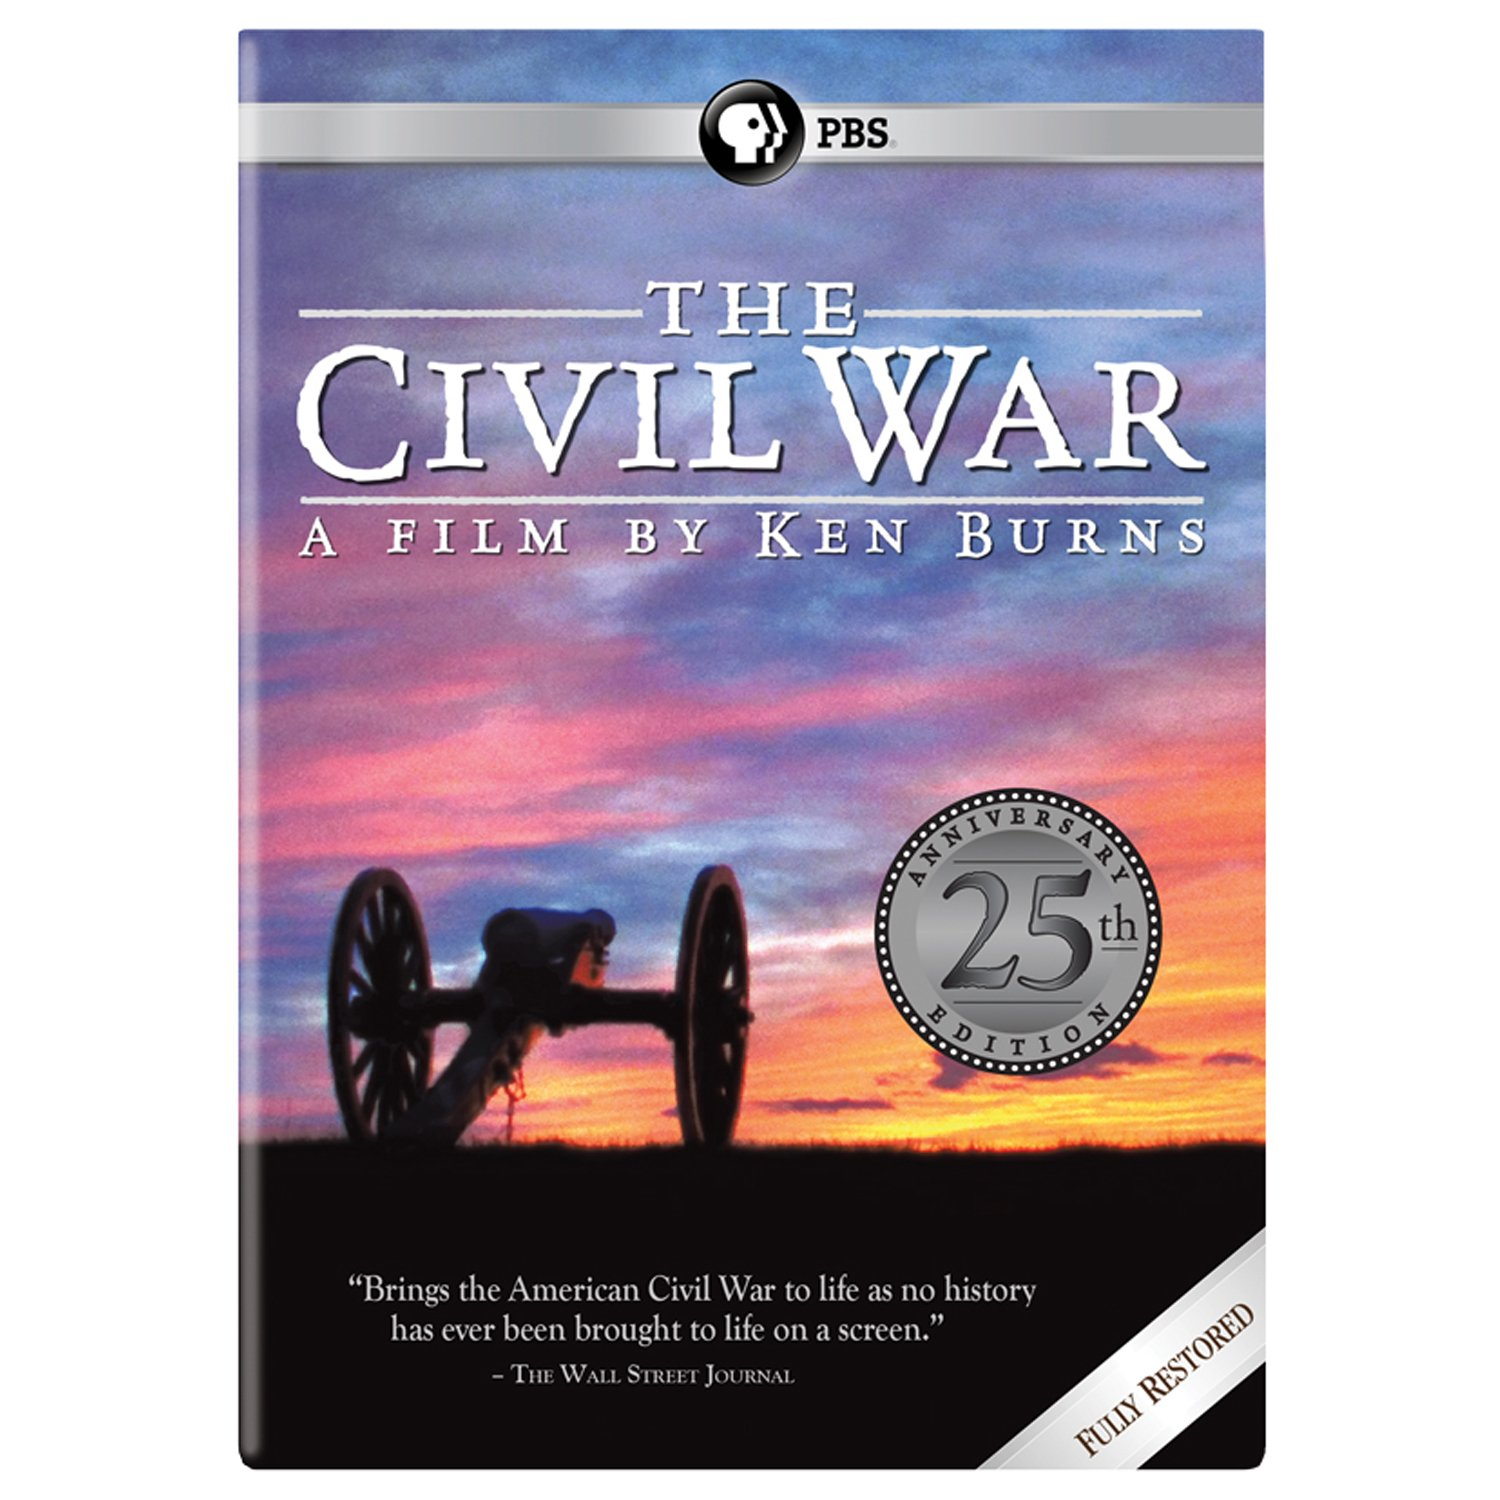 DVD : The Civil War (25th Anniversary Edition) (Anniversary Edition, Boxed Set, 6PC)